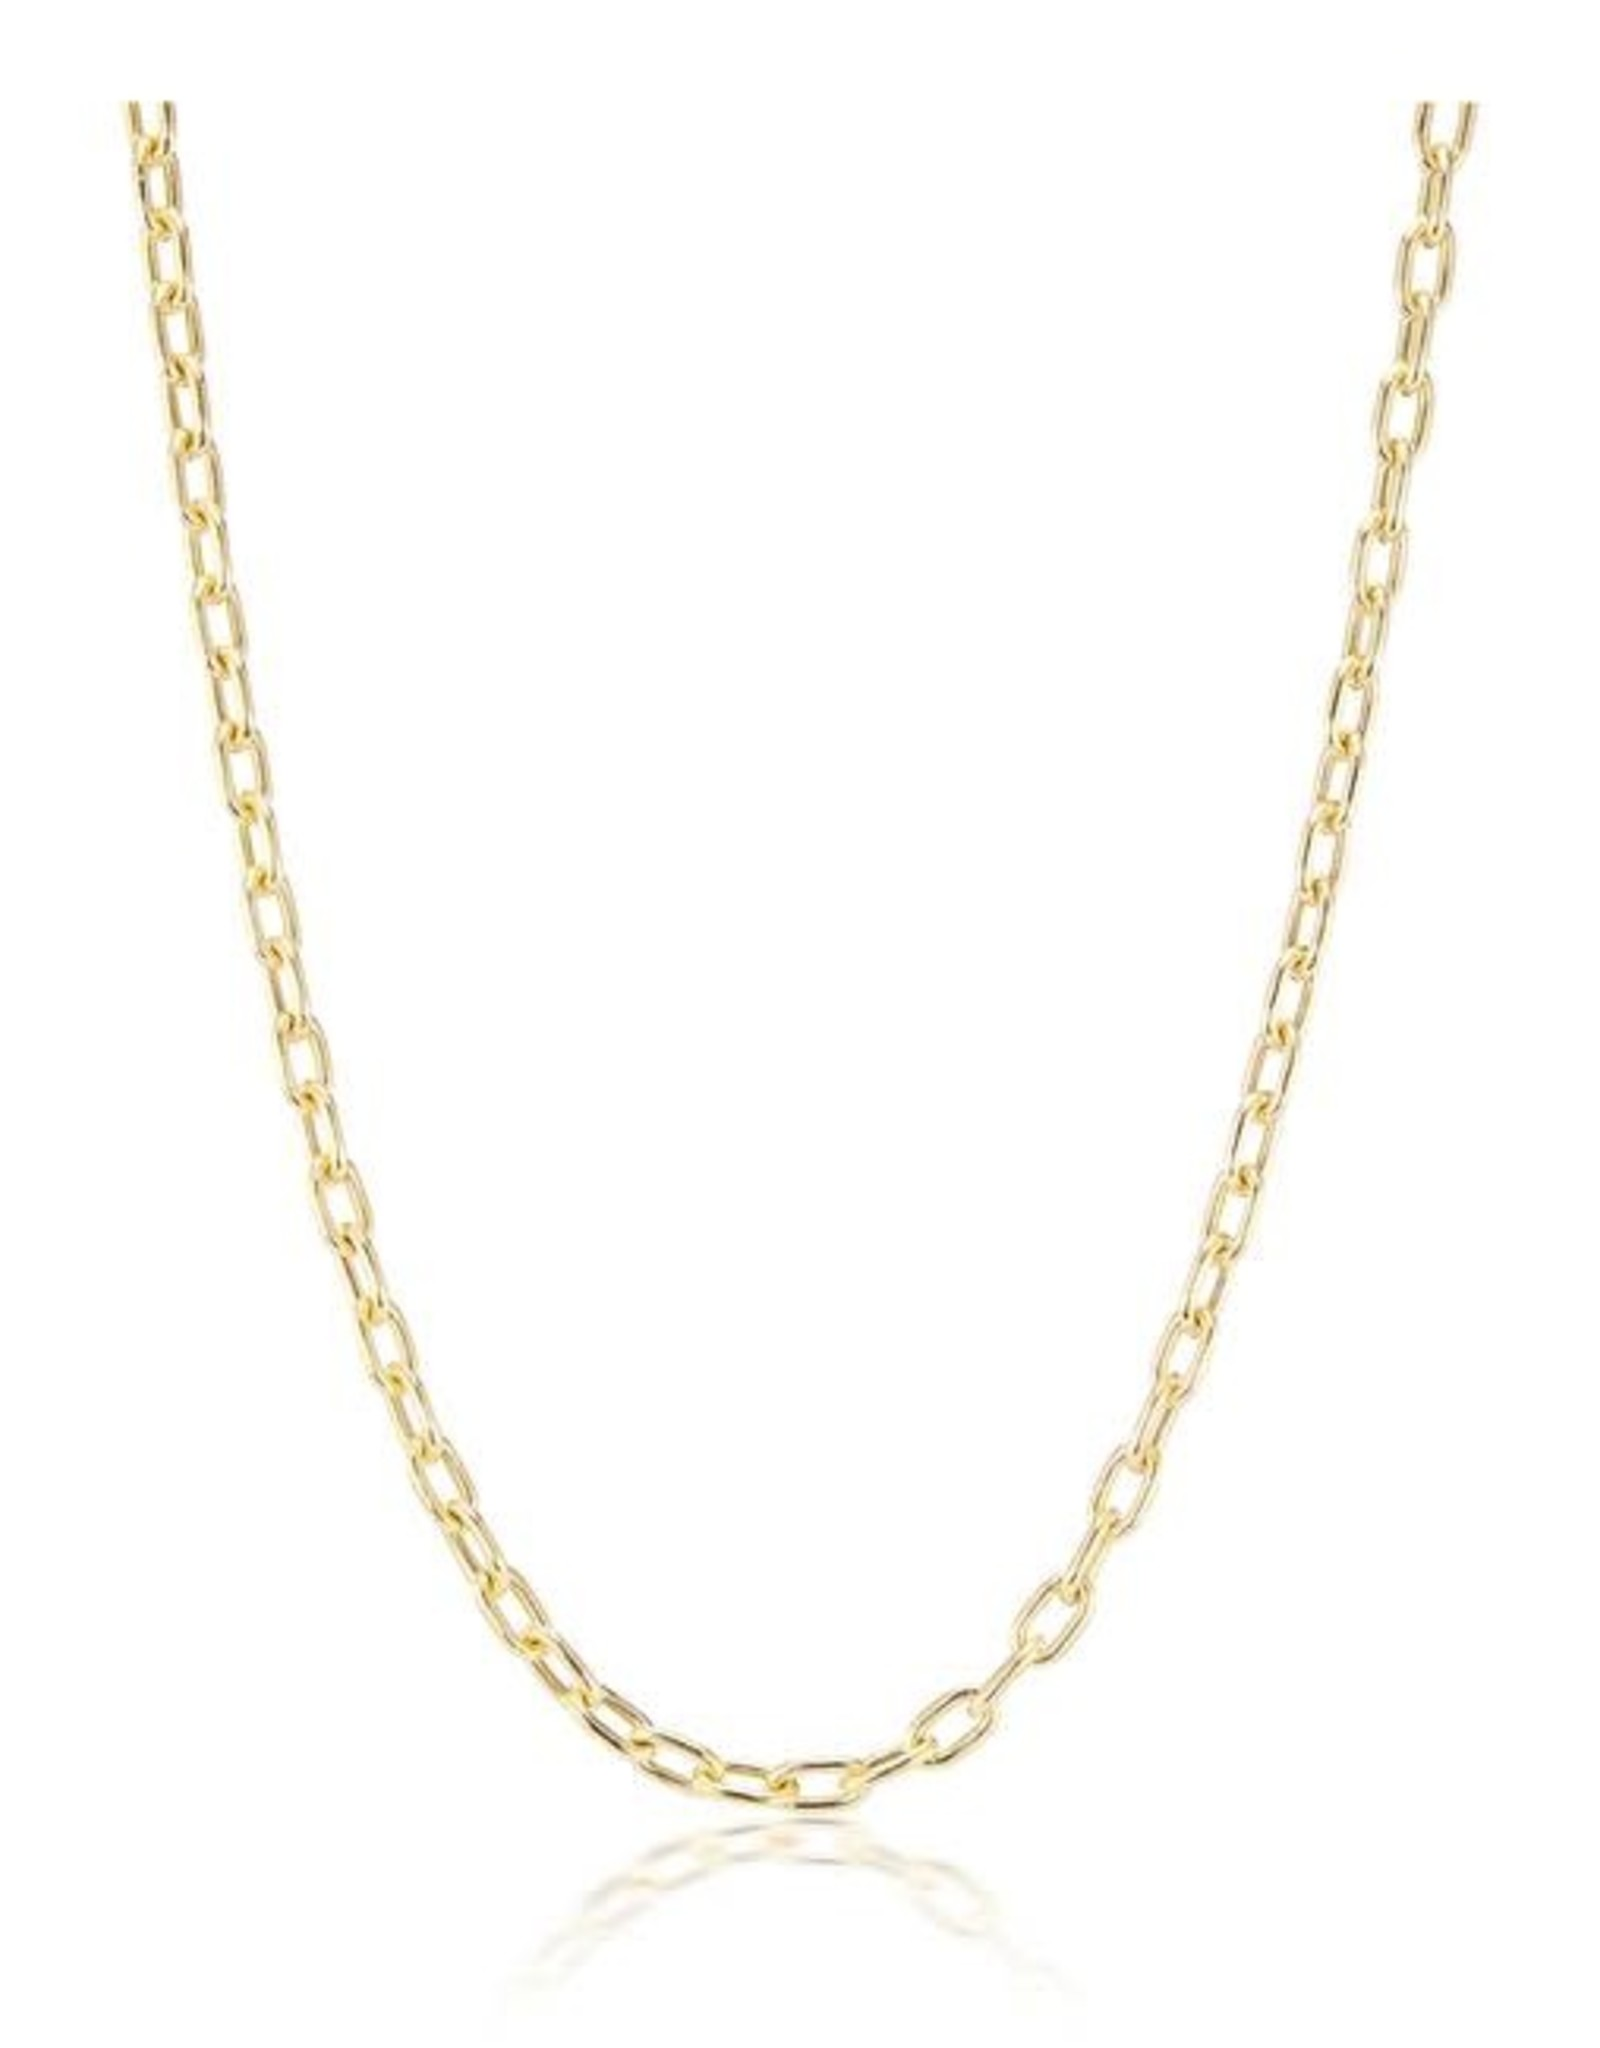 KBH Jewels Thick Elongated Link Necklace